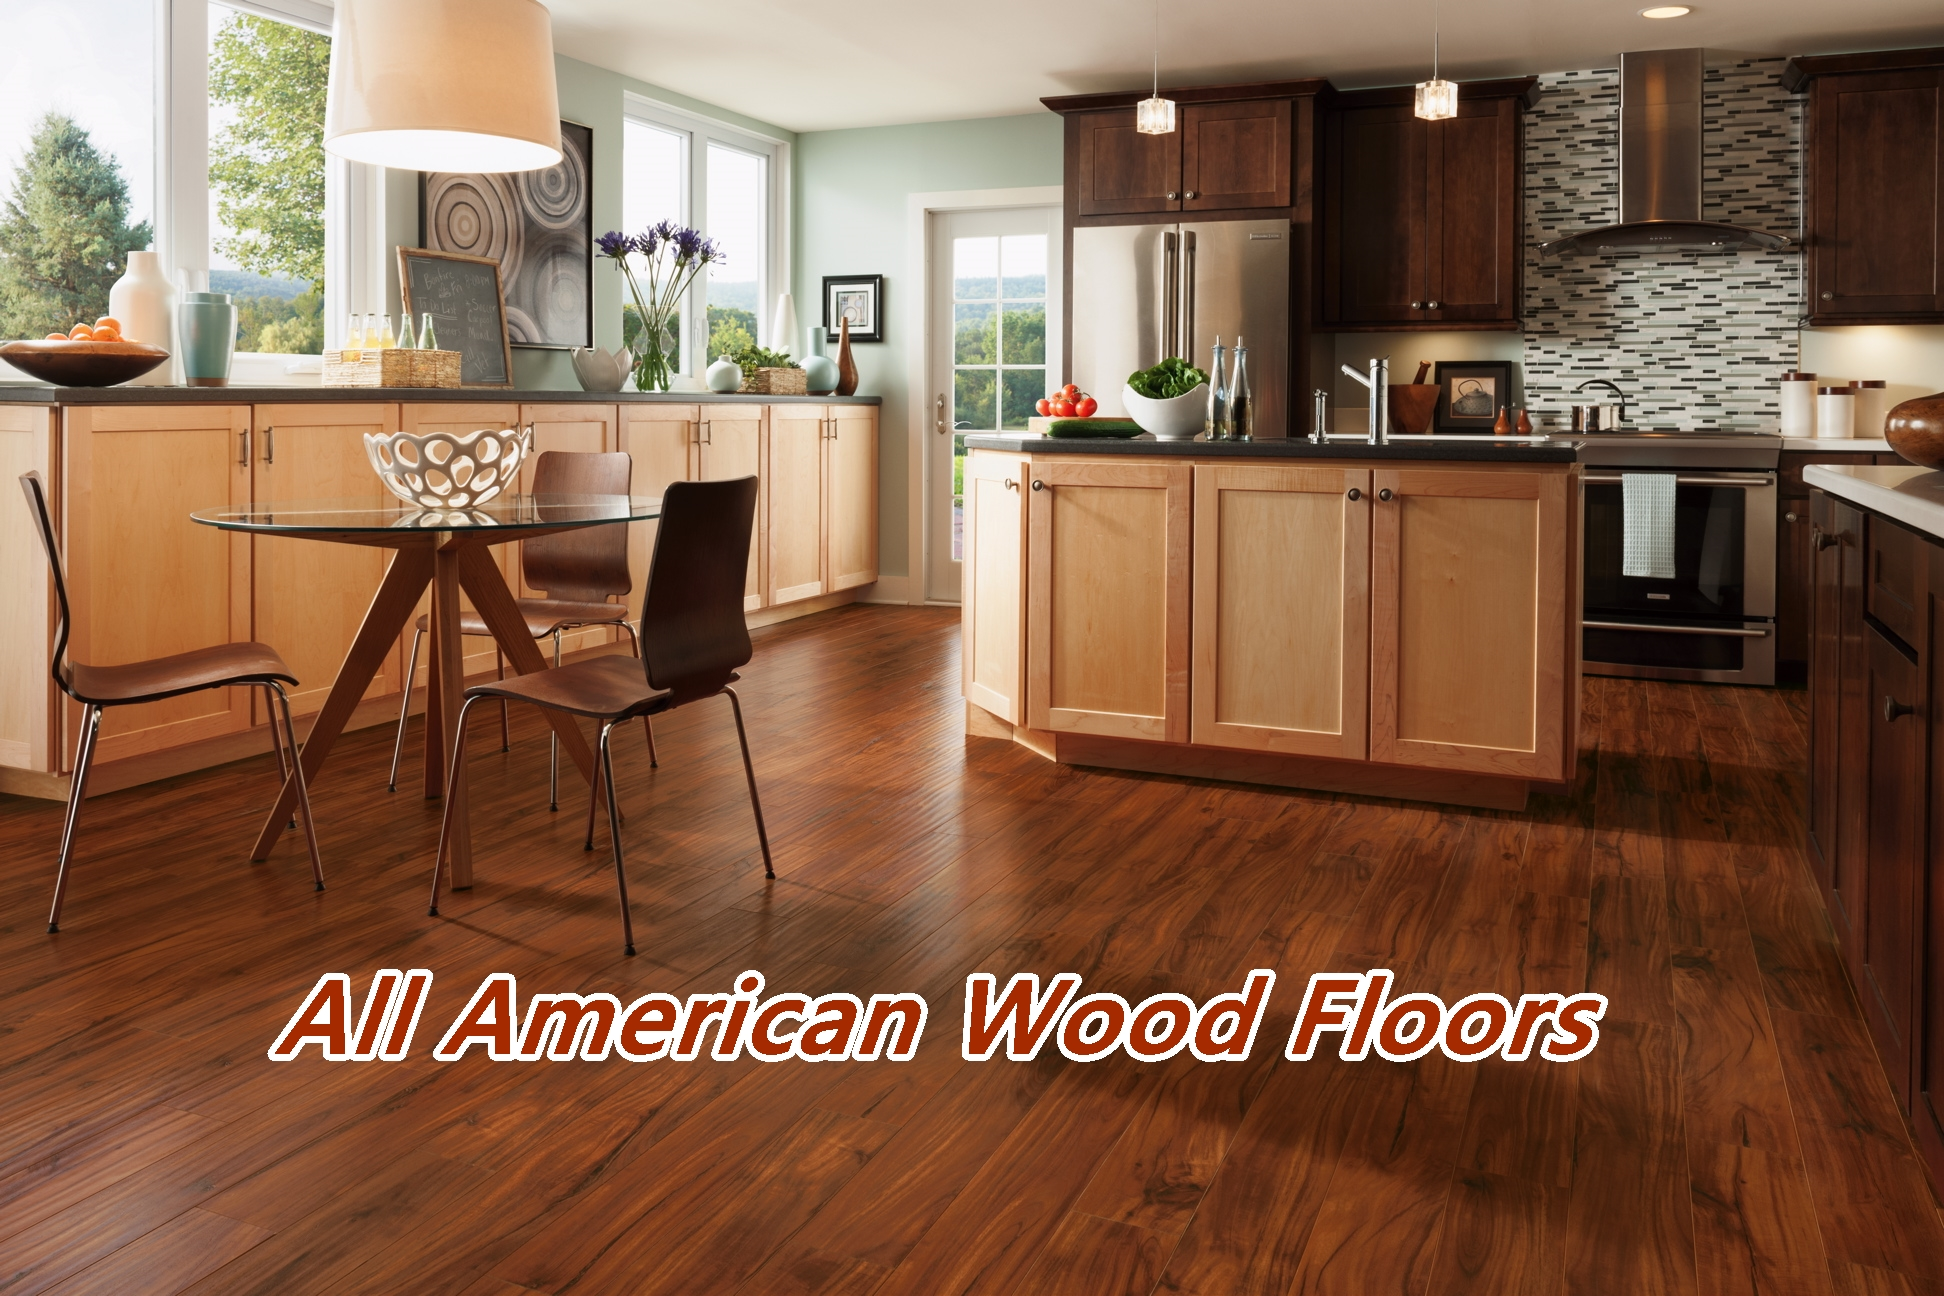 Solid Wood Floor In Kitchen All American Wood Floors Orlando Winter Park Melbourne